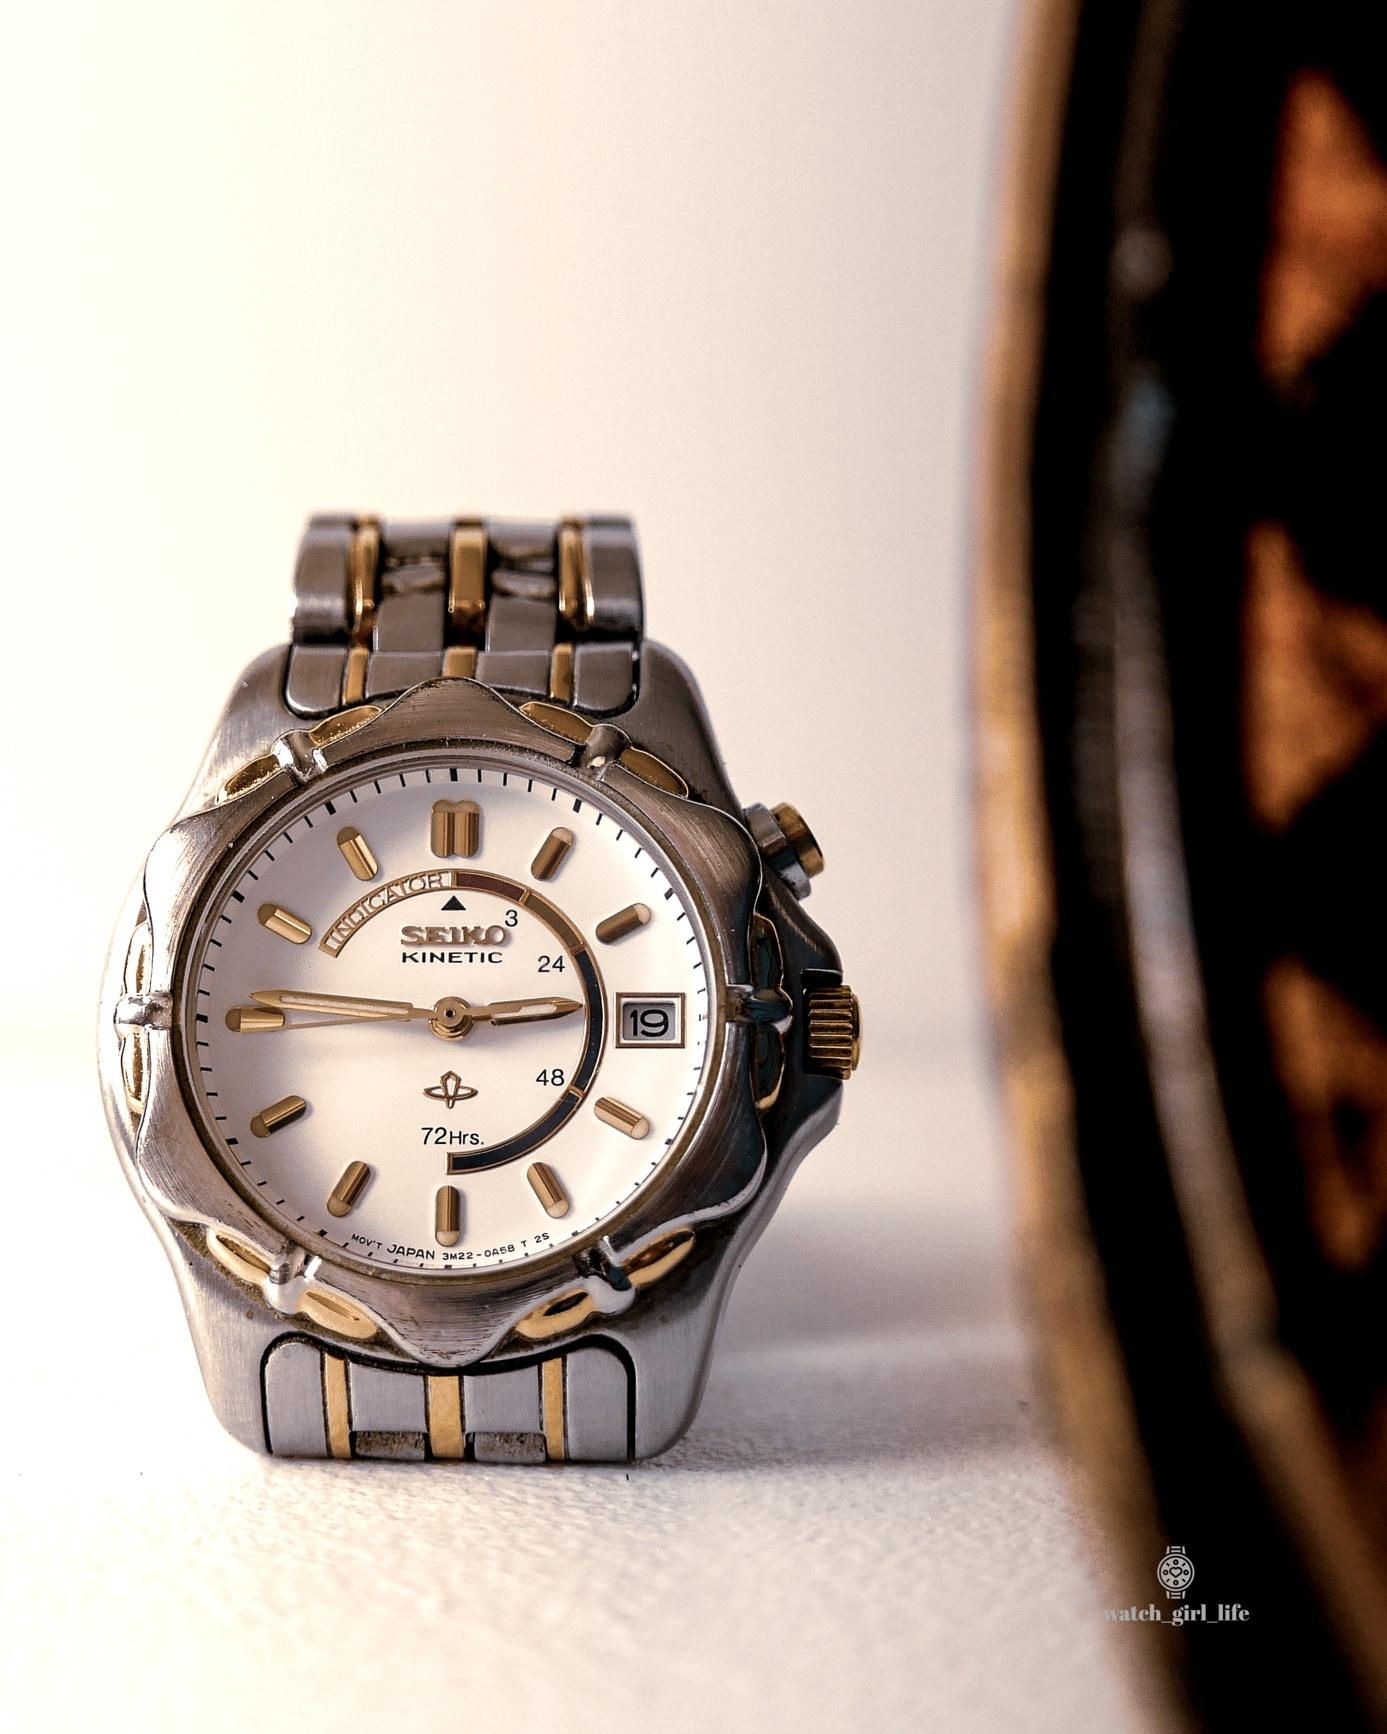 A picture containing watch, indoor, chain, close  Description automatically generated